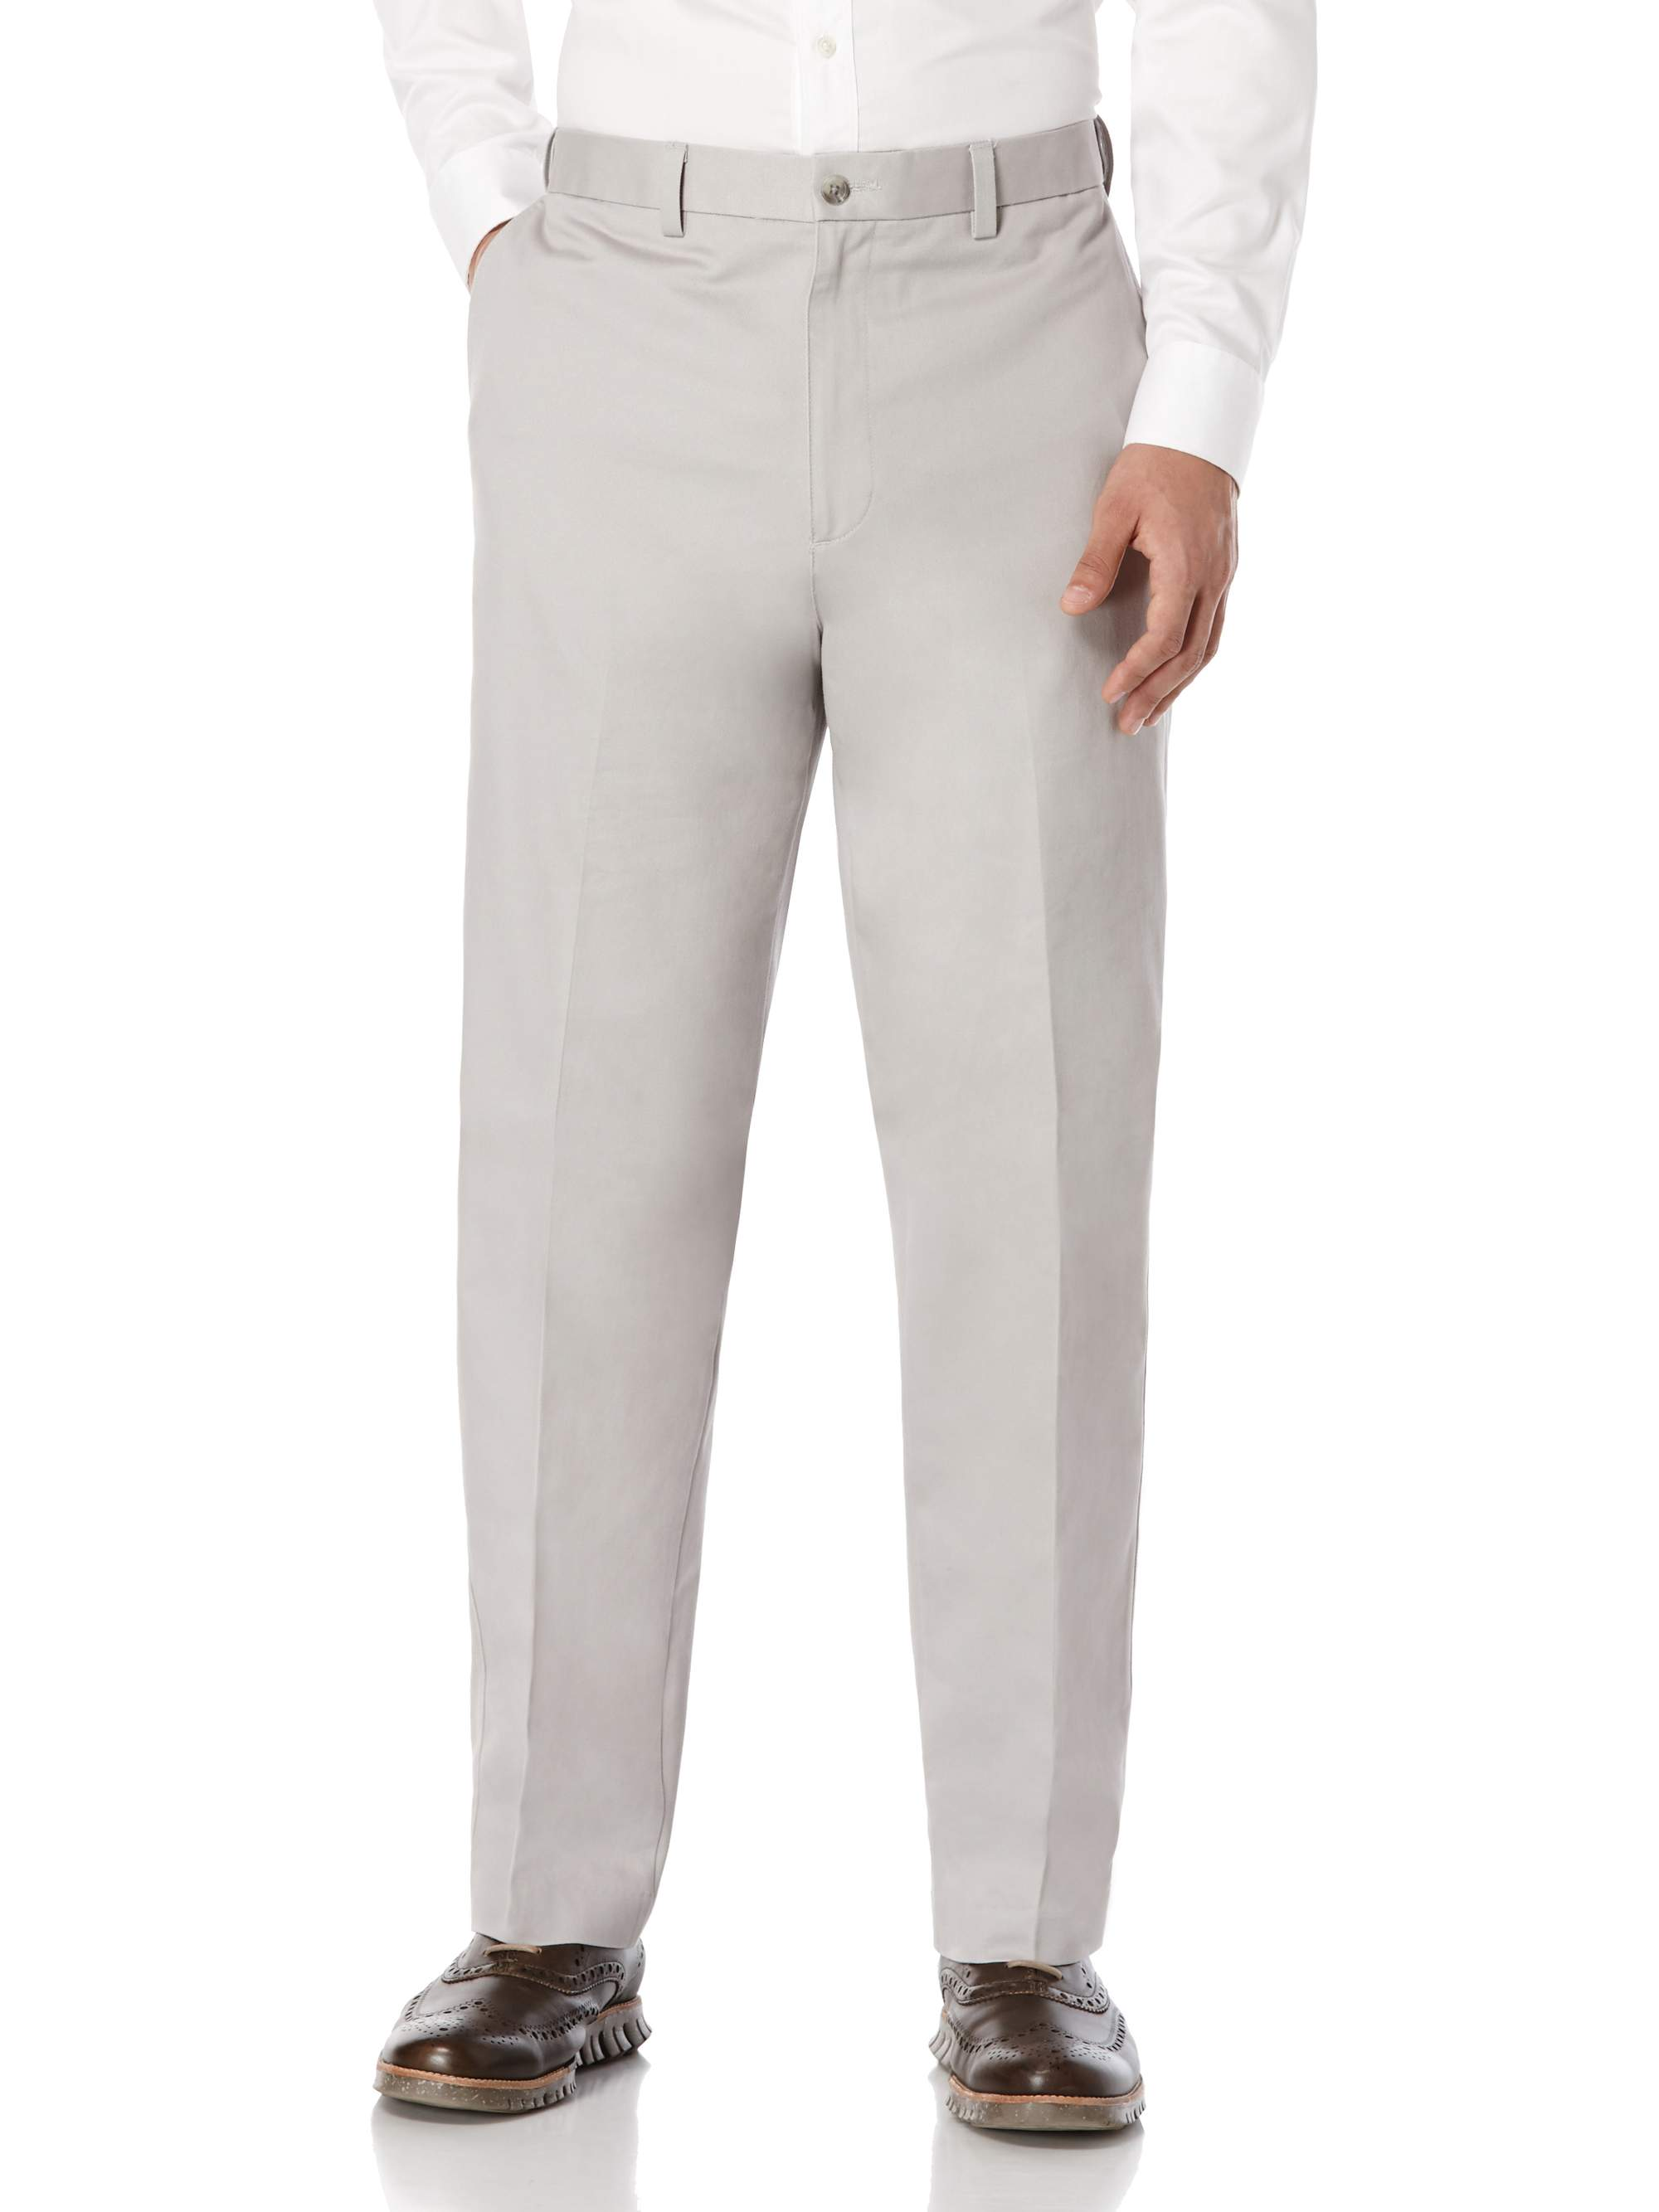 Men's Flat Front Performance Chino Pants